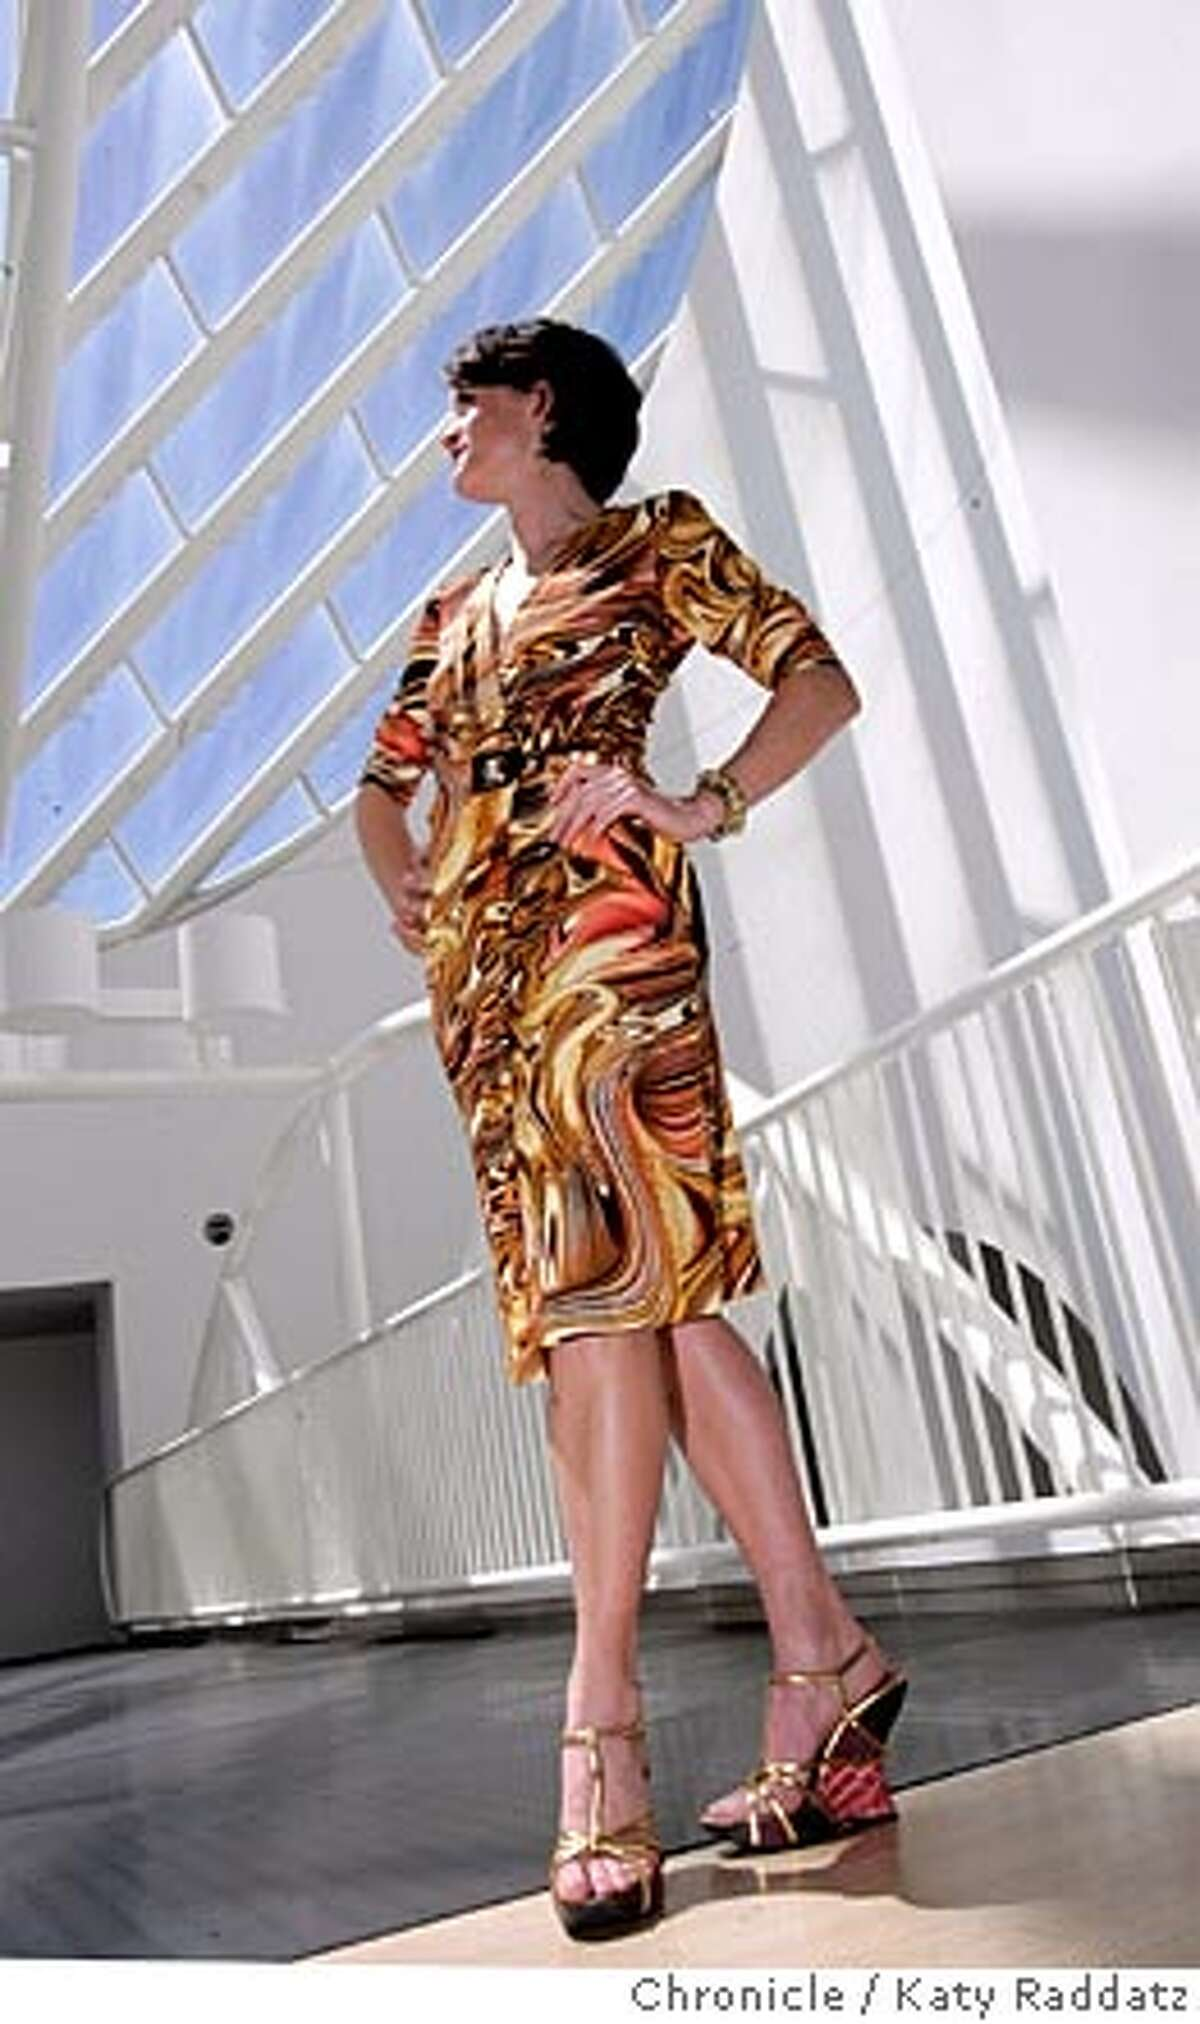 STYLEMATTERS24011_RAD.JPG Advance story for the big MOMA Modern Ball at the San Francisco Museum of Modern Art. SHOWN: Amanda Michael (cq) Gamble modeling her lovely Escada tiger eye patterned wrap dress with her lovely Prada gold platform wedge shoes. Amanda stands on the fifth floor bridge with the famous museum skylight behind her. Photo taken on 4/18/05, in SAN FRANCISCO, CA. By Katy Raddatz / The San Francisco Chronicle MANDATORY CREDIT FOR PHOTOG AND SF CHRONICLE/ -MAGS OUT